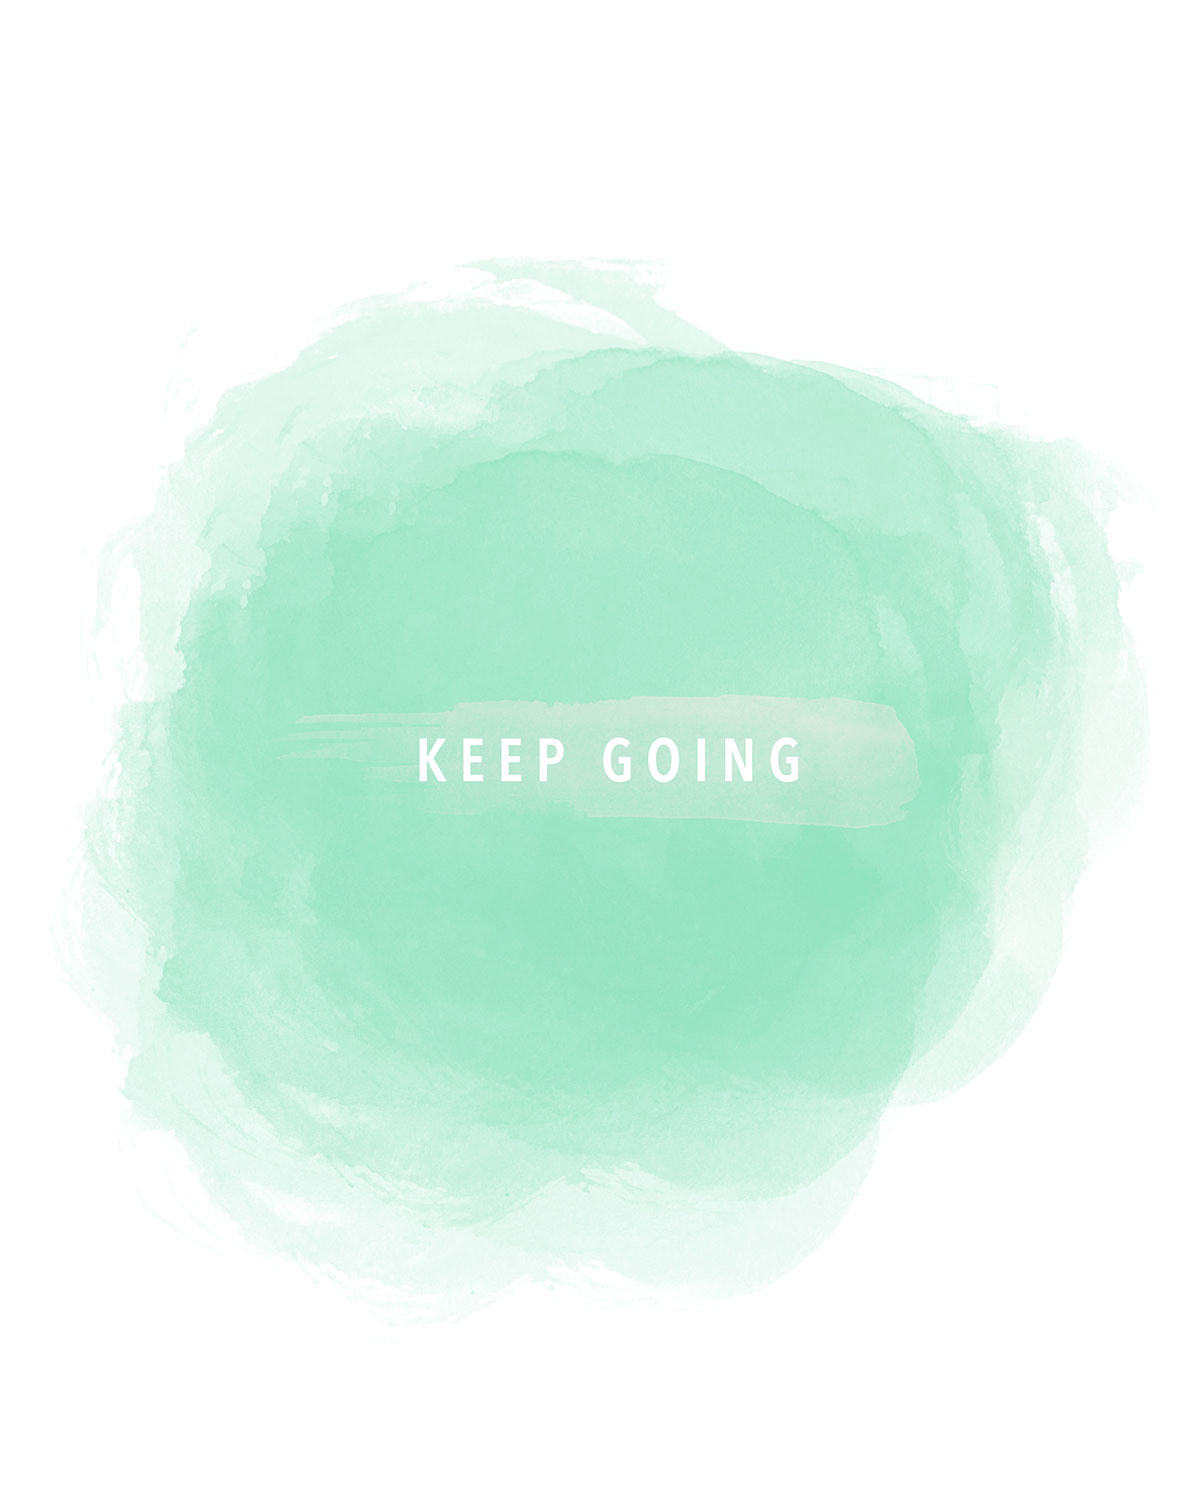 Keep Going 8x10 Printable - kraft&mint